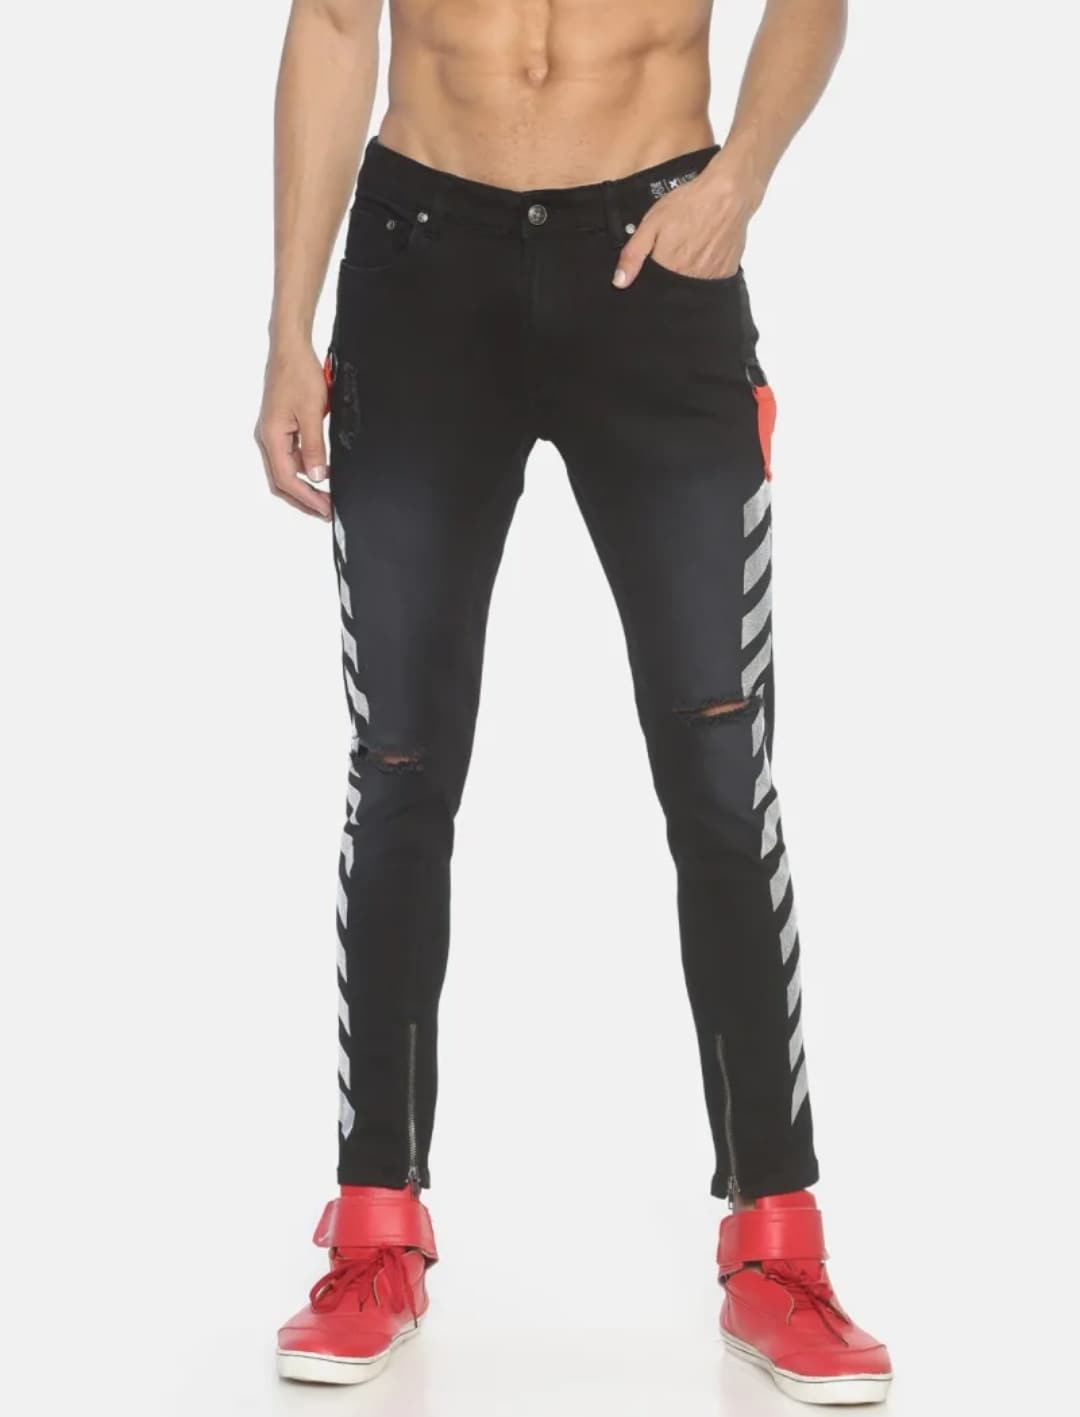 Men's Black Side Printed Jeans (30,Black)